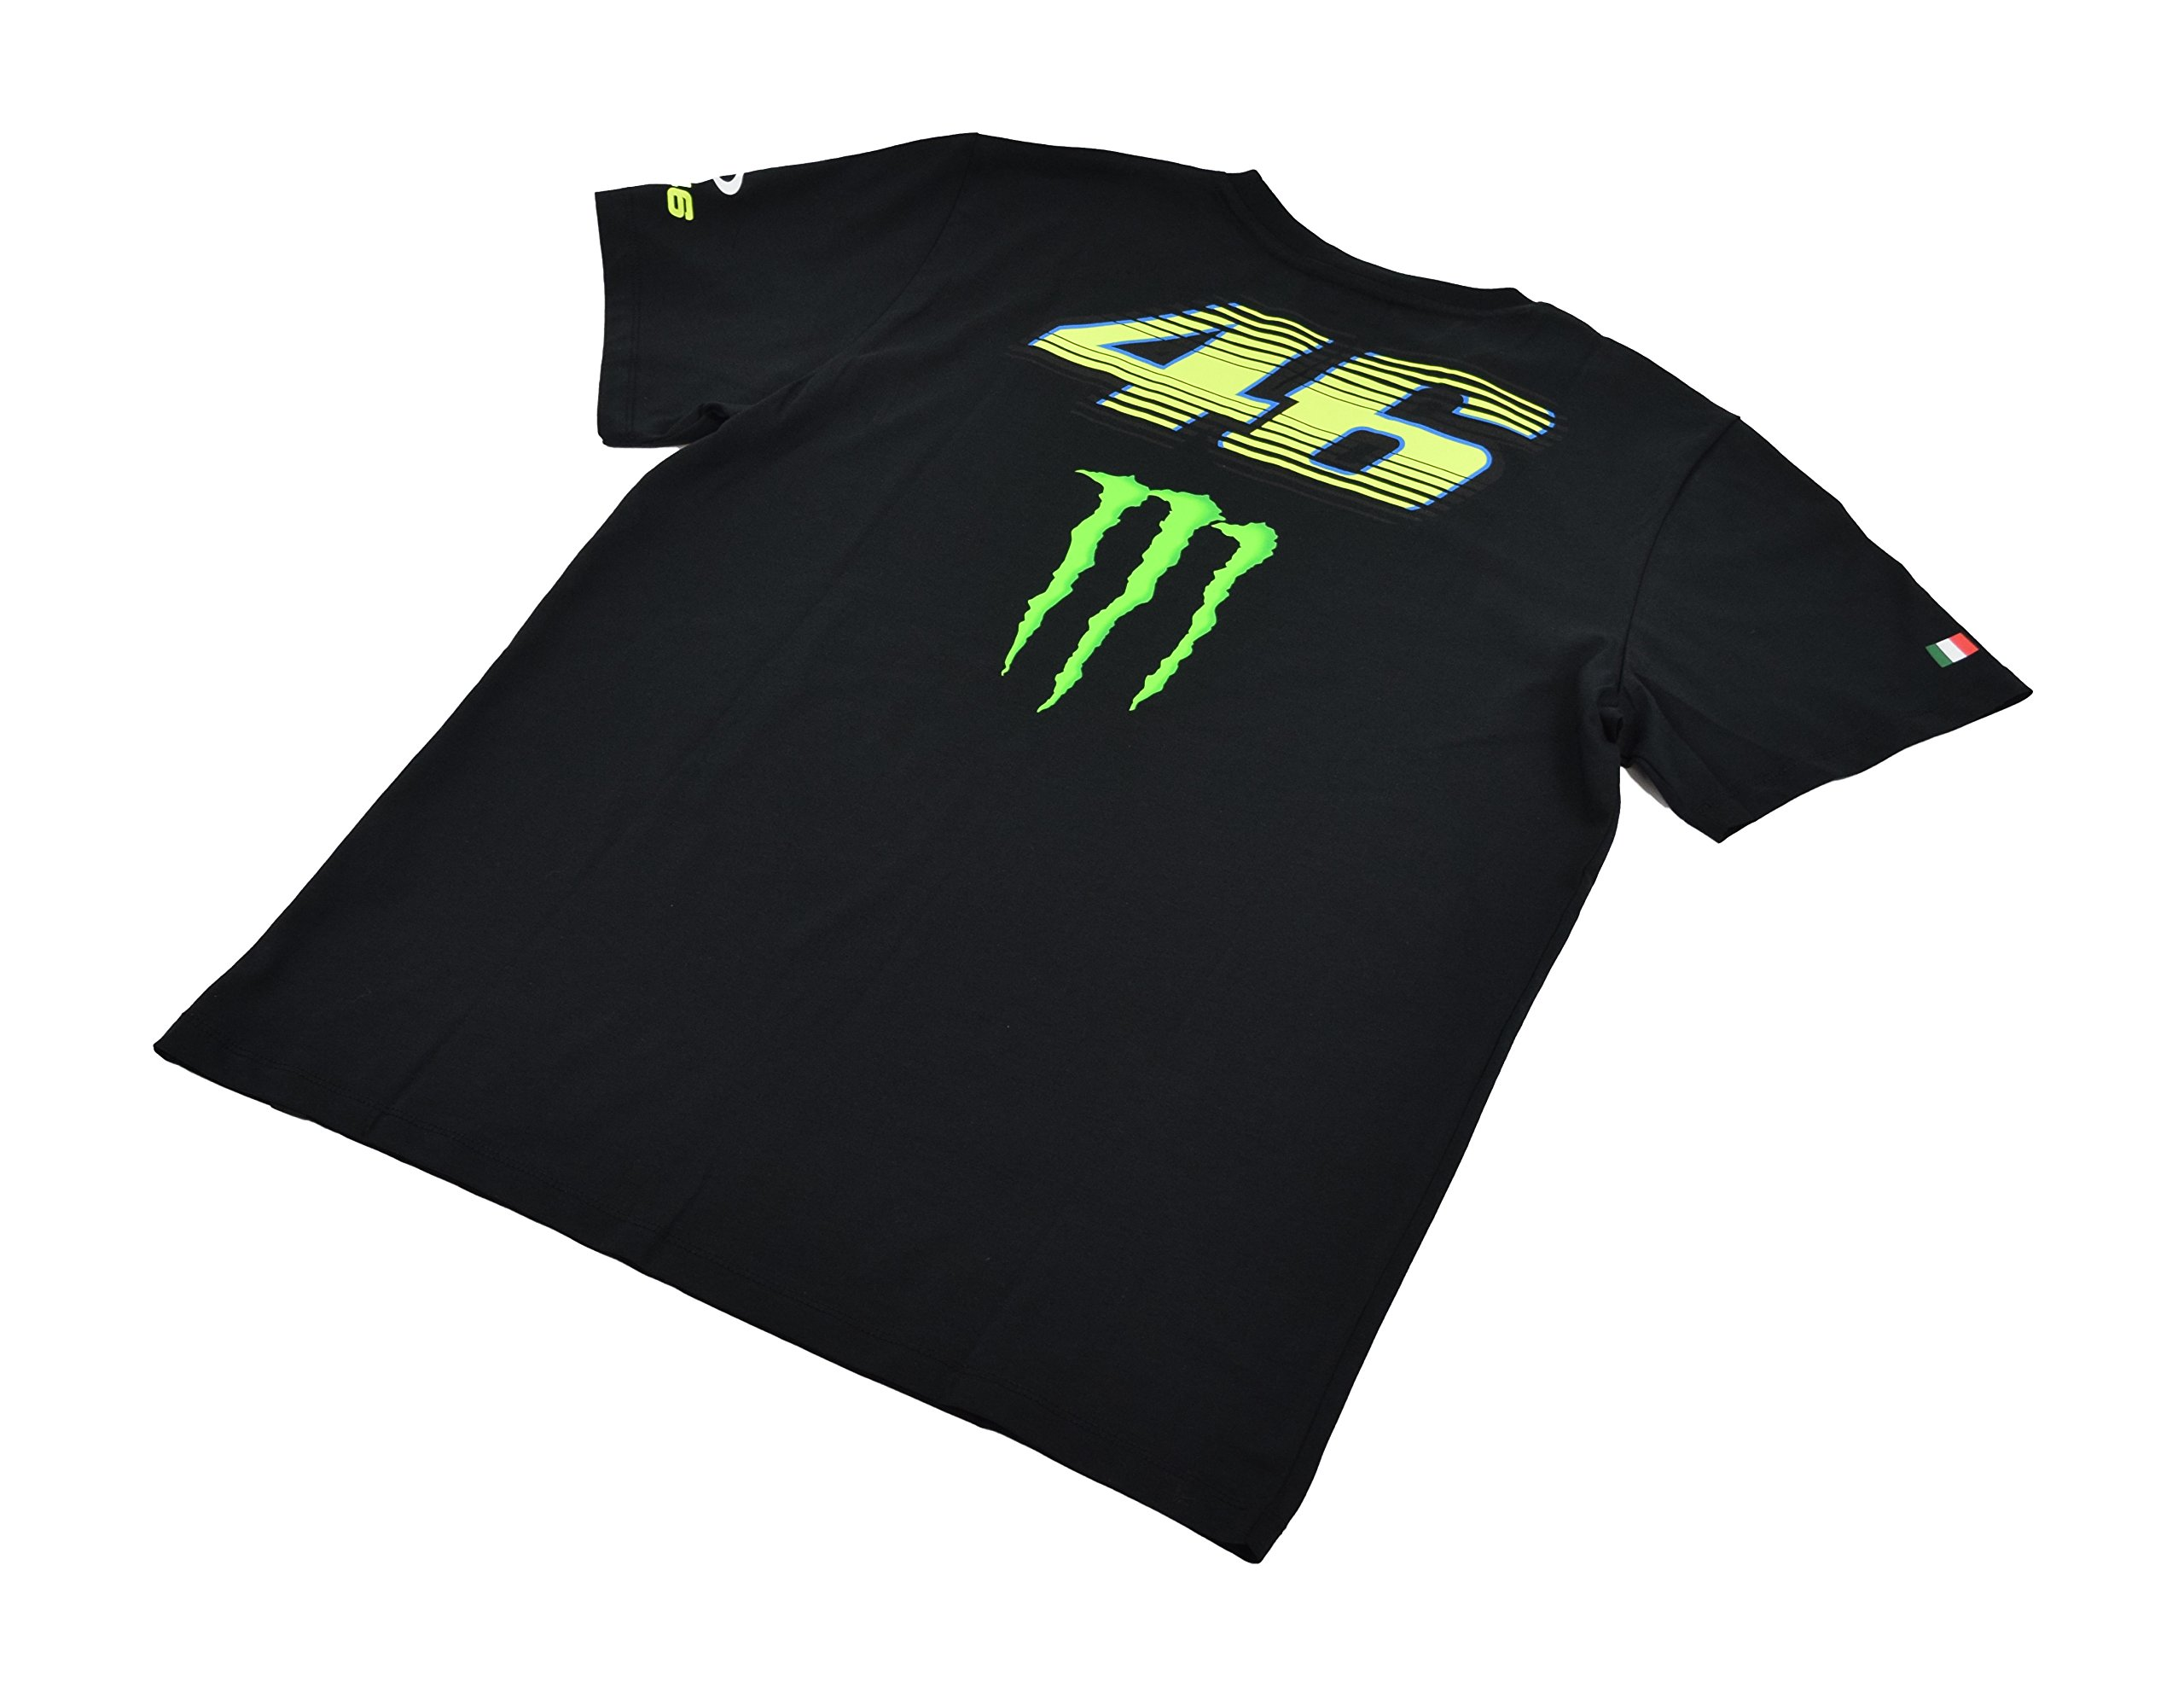 Yamaha Valentino Rossi VR46 X MONSTERENERGY short-sleeved T-shirt Black Monster Energy & amp; OAKLEY & amp; 46 Biggurogo size XLARGE (Europe)